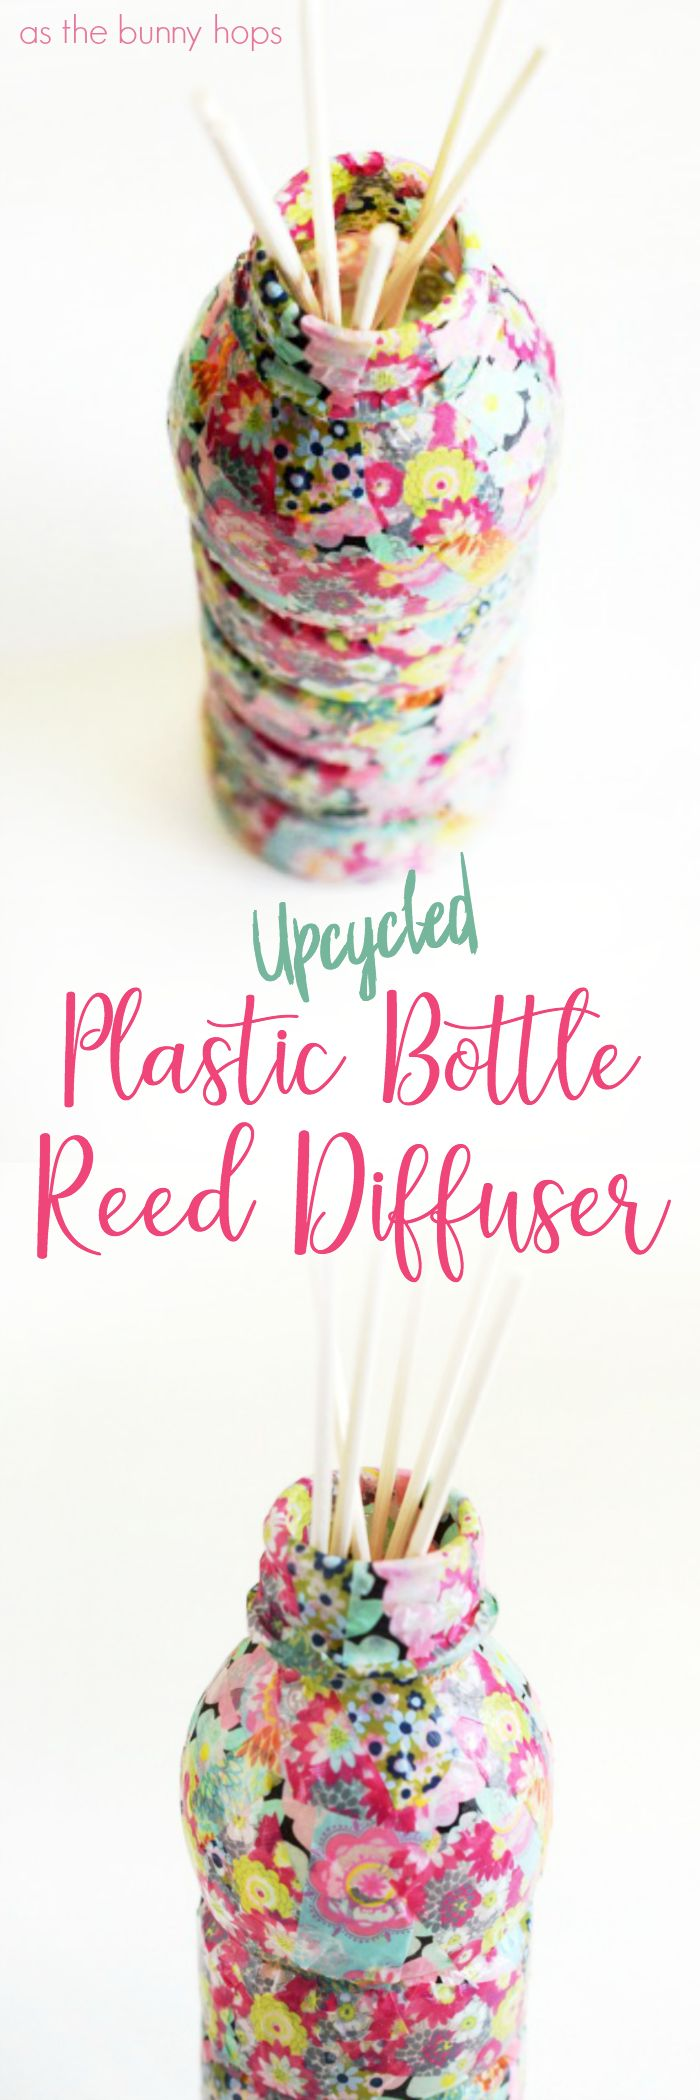 Celebrate Earth Day with an easy and fun upcycle project-a reed diffuser made from a plastic bottle! - As The Bunny Hops®️